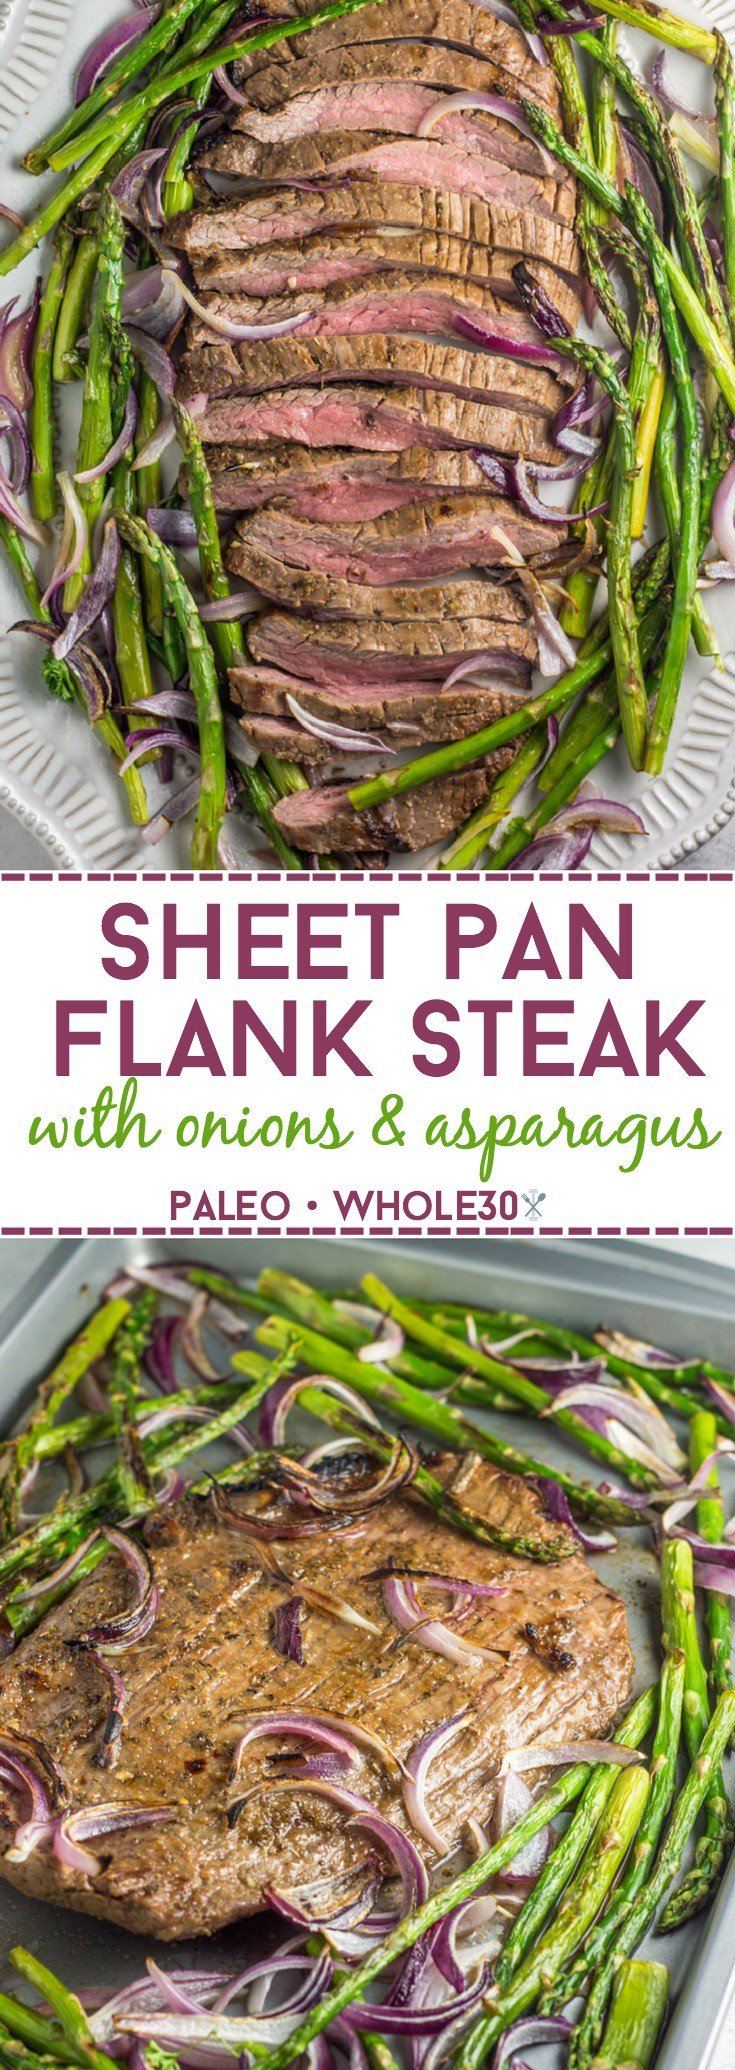 This 20 minute, paleo and Whole30 sheet pan flank steak dinner is paired perfectly with roasted red onions and asparagus.